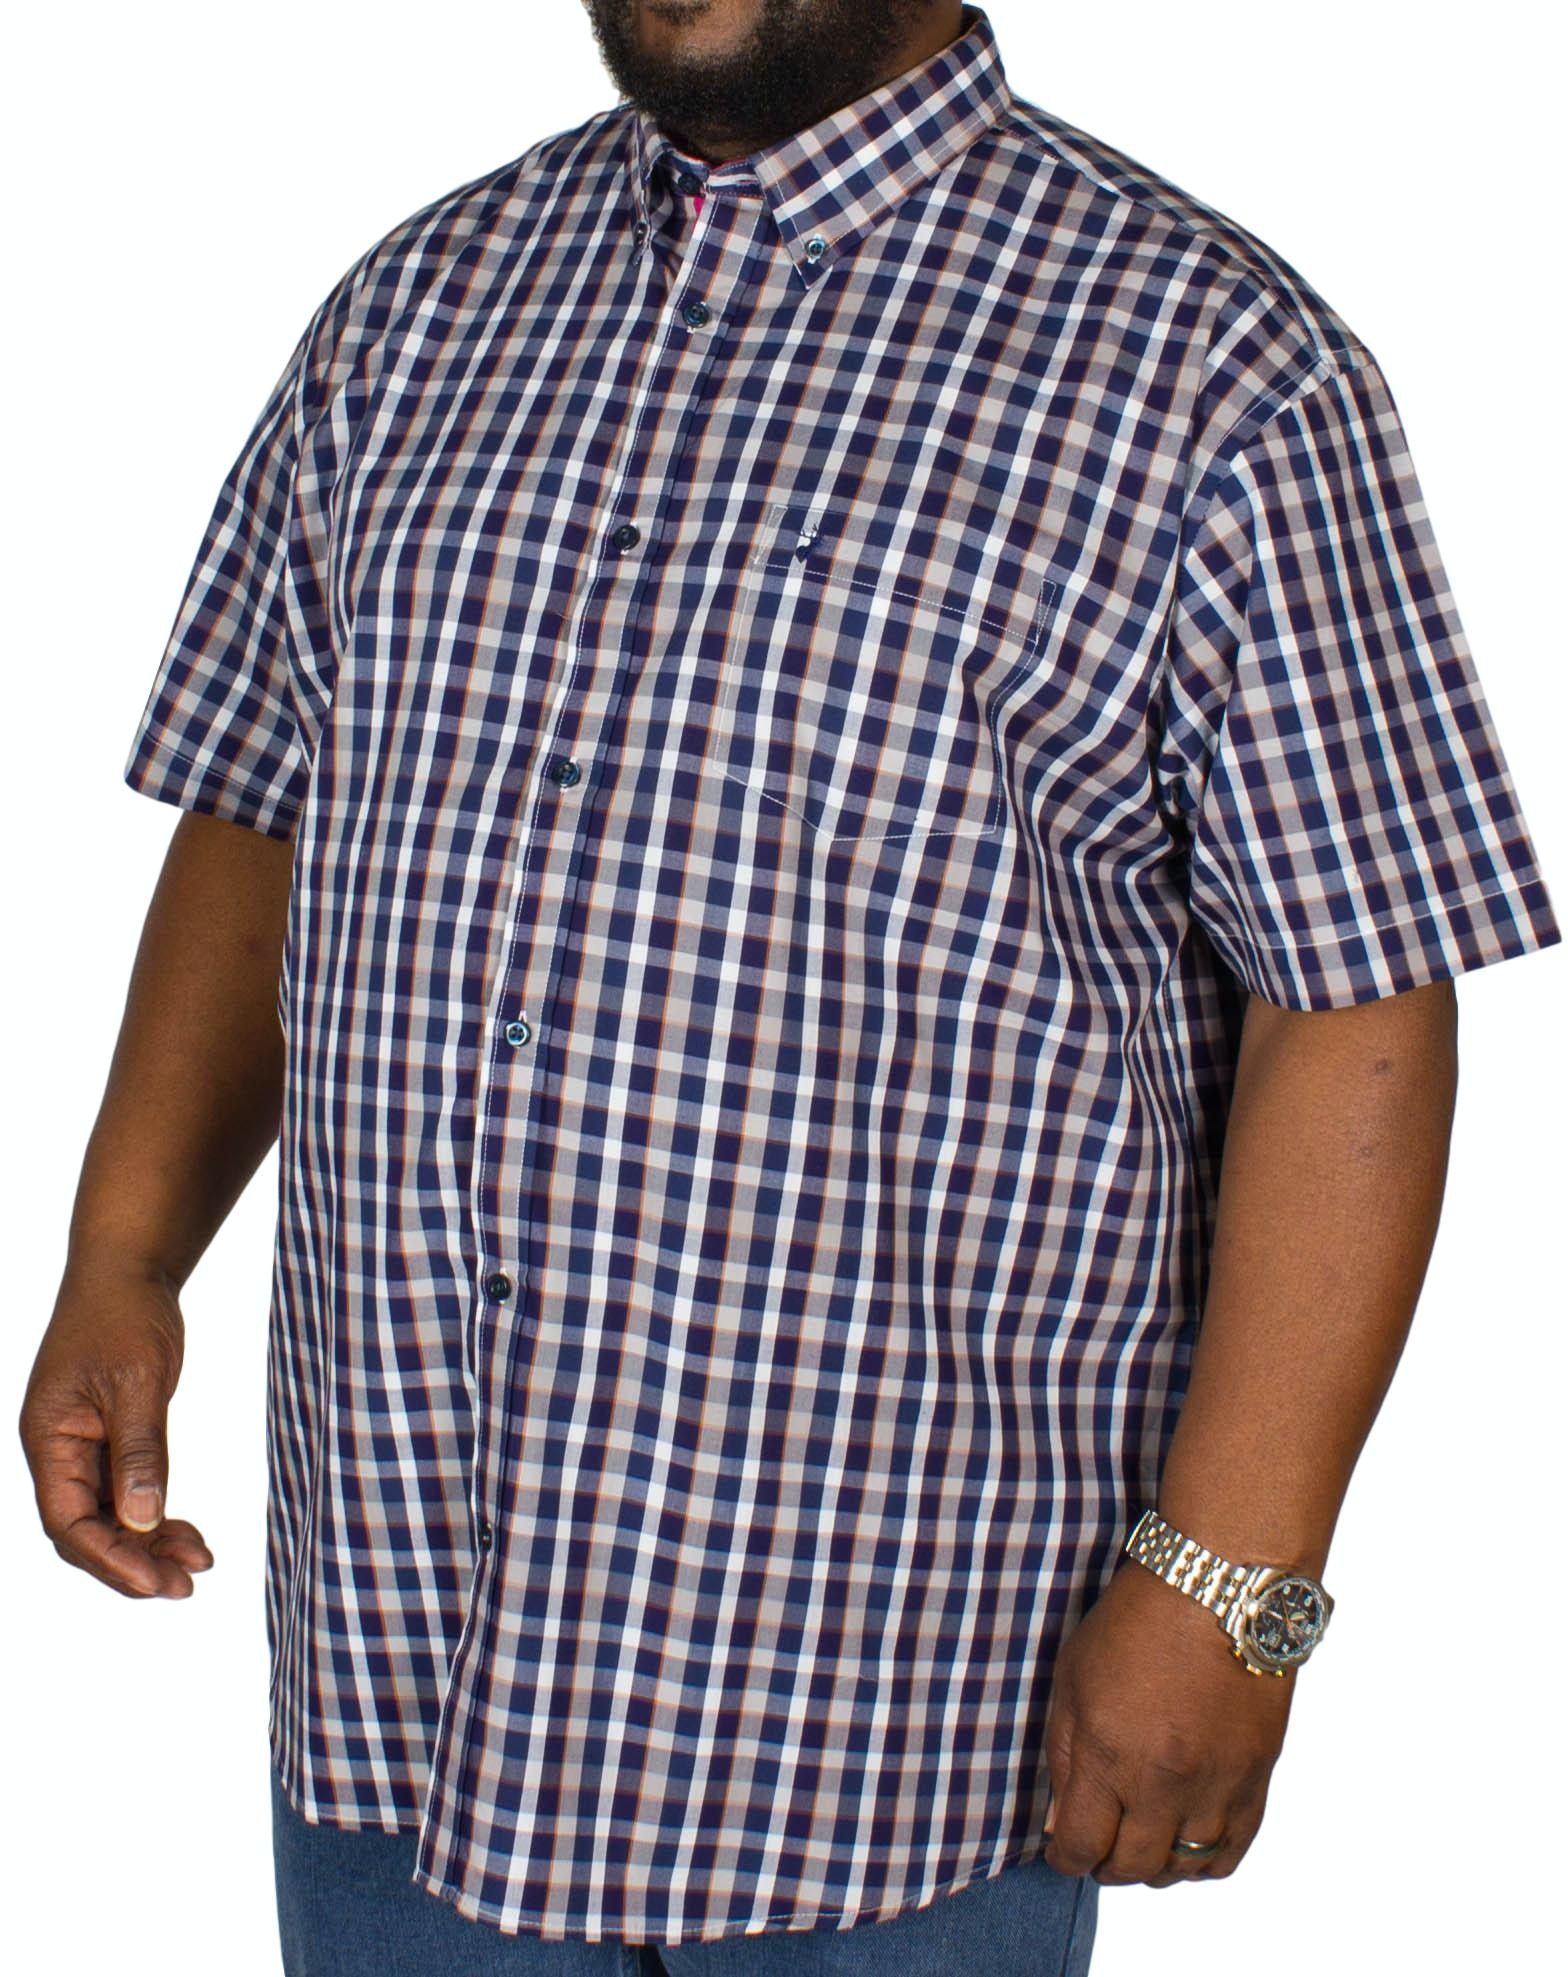 KAM Short Sleeve Retro Check Shirt Navy